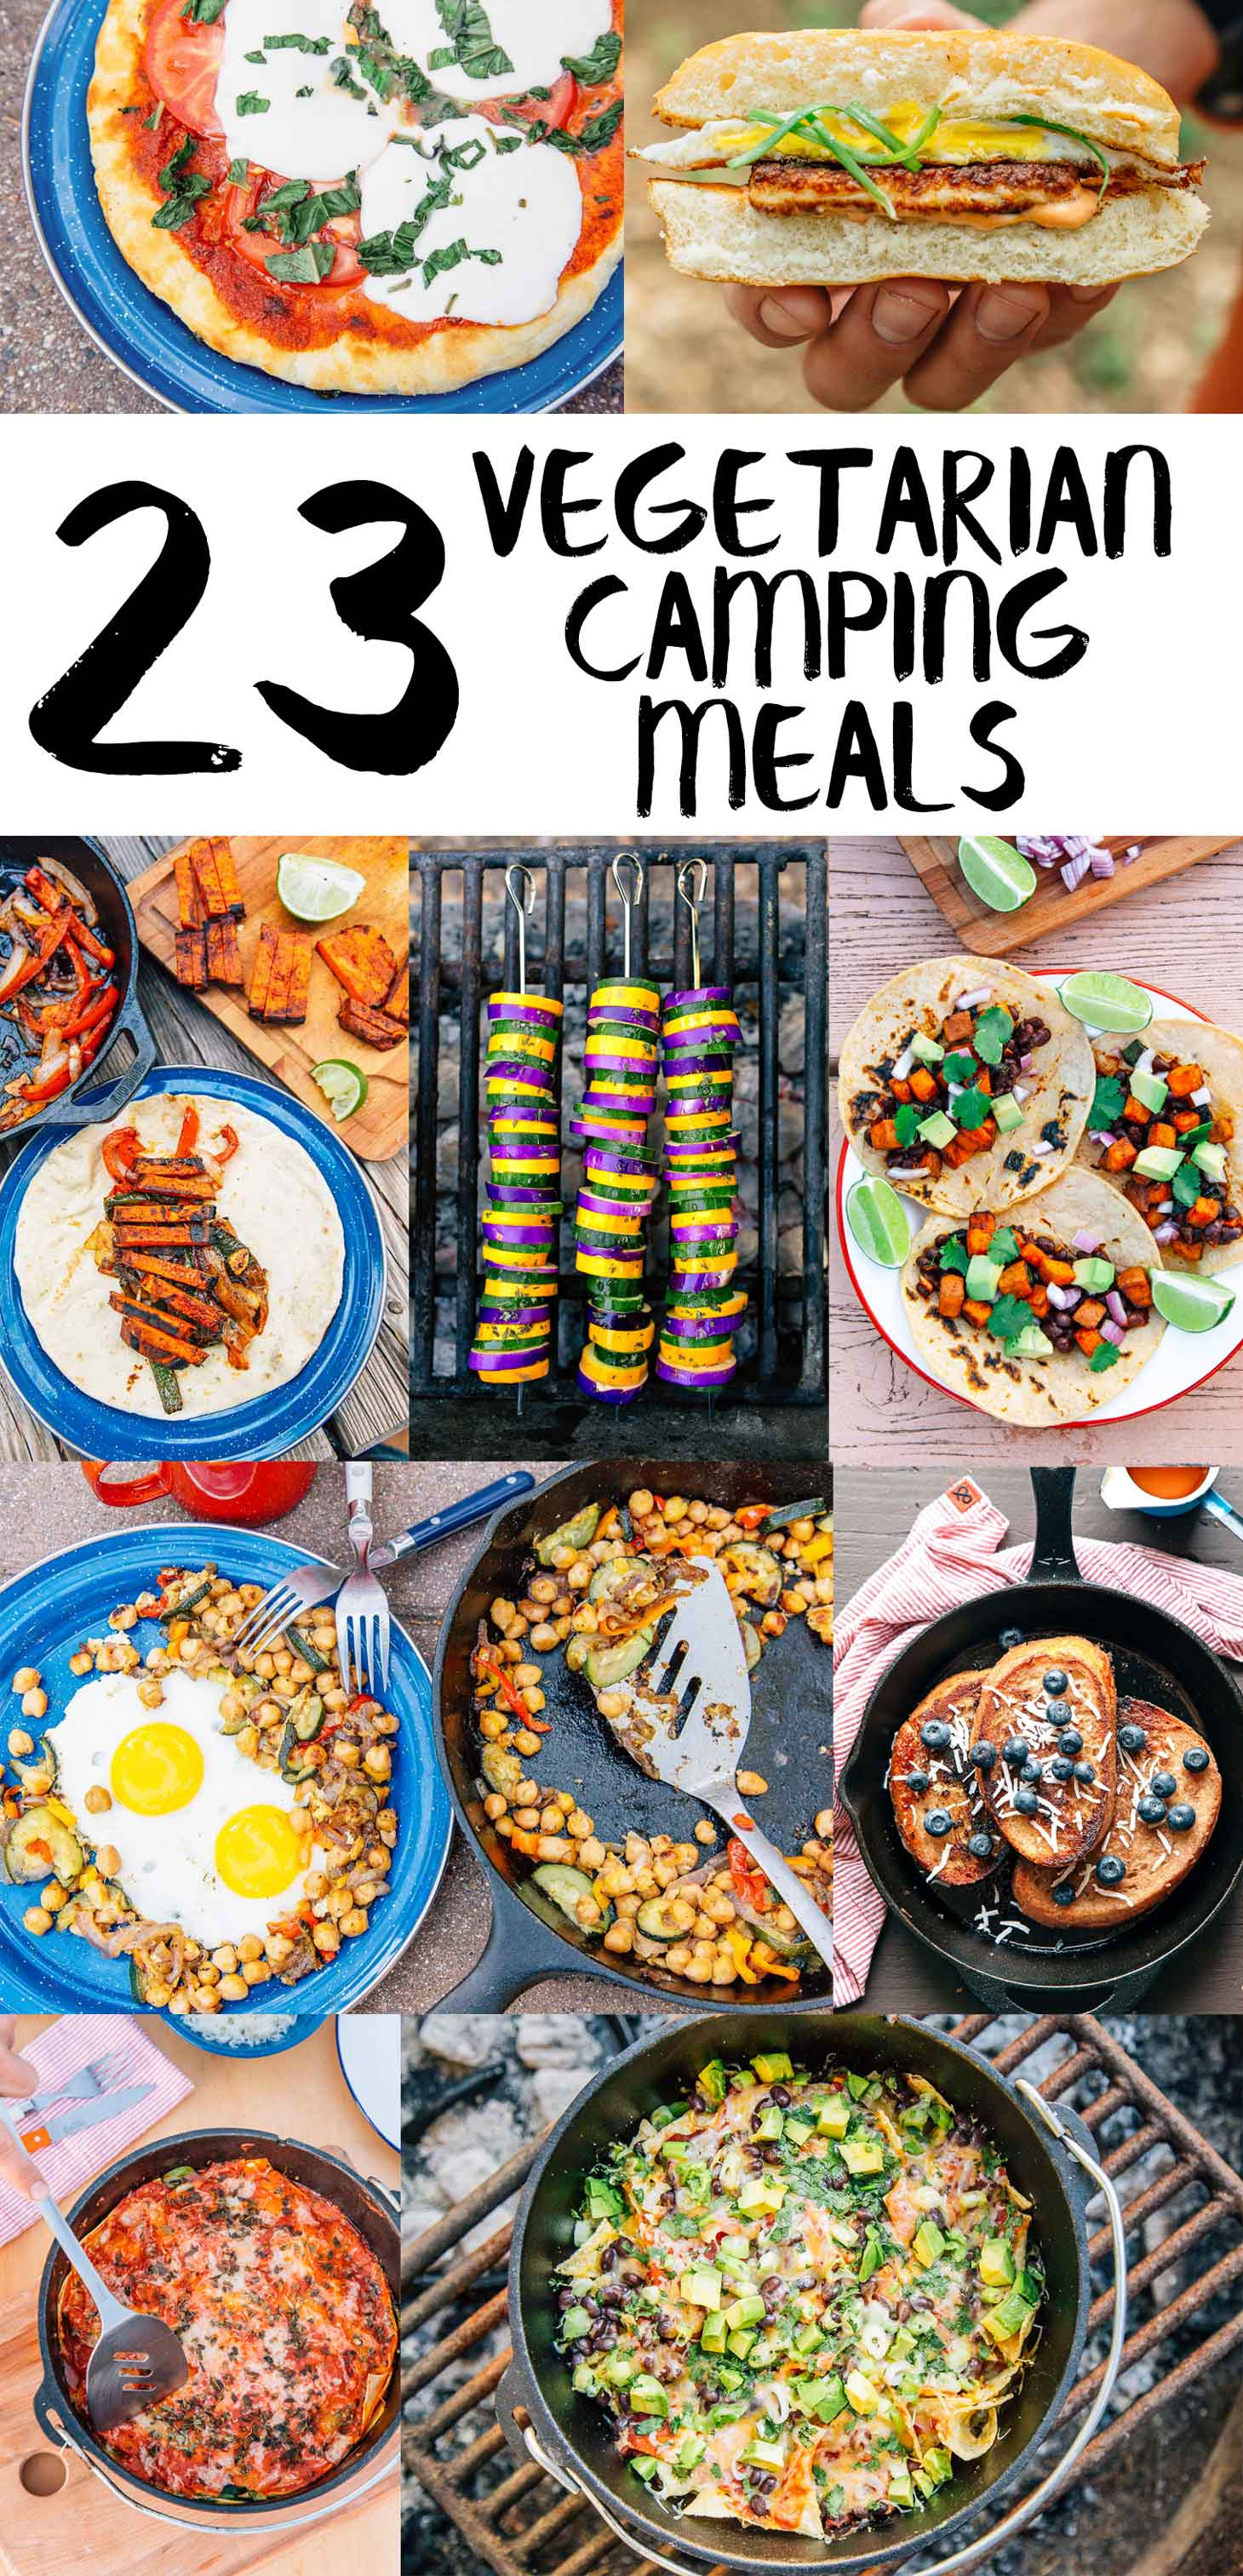 A roundup of vegetarian camping food ideas that even meat eaters will enjoy! These are our  favorite vegetarian camping recipes + meals for summer. via @freshoffthegrid